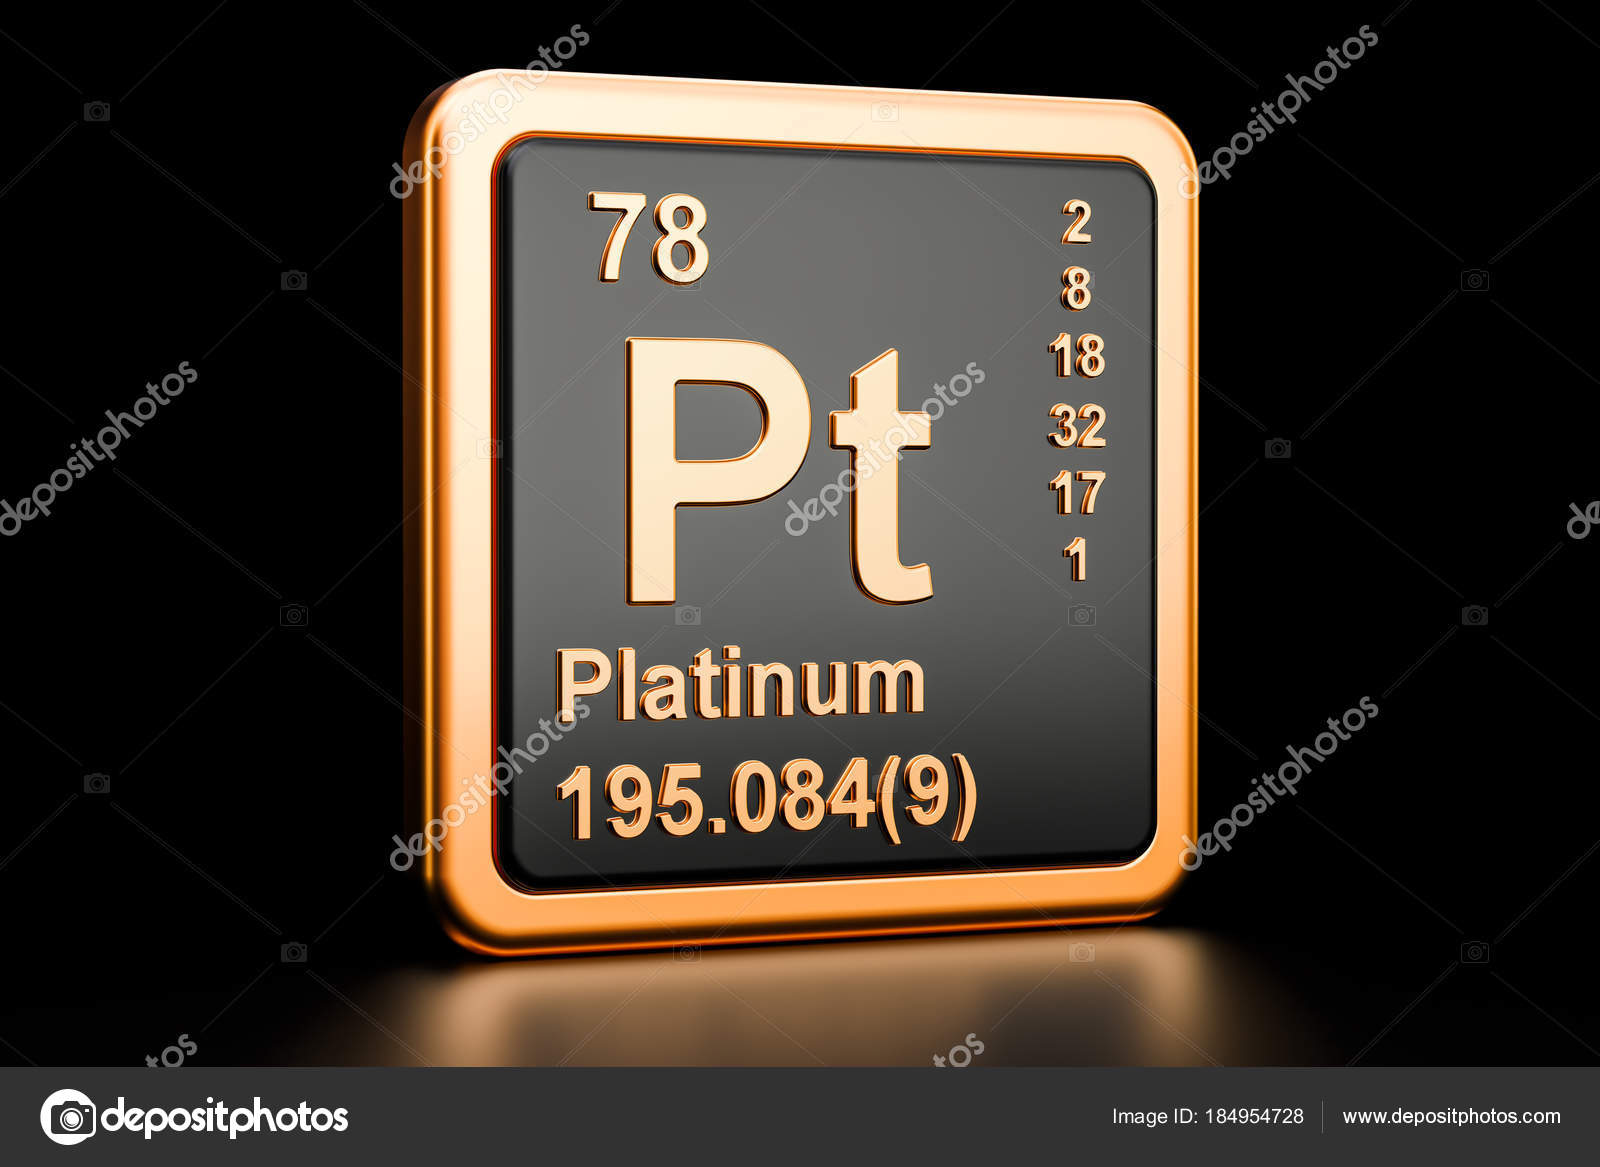 pt stargames element symbol chemical platinum eu replaceproject